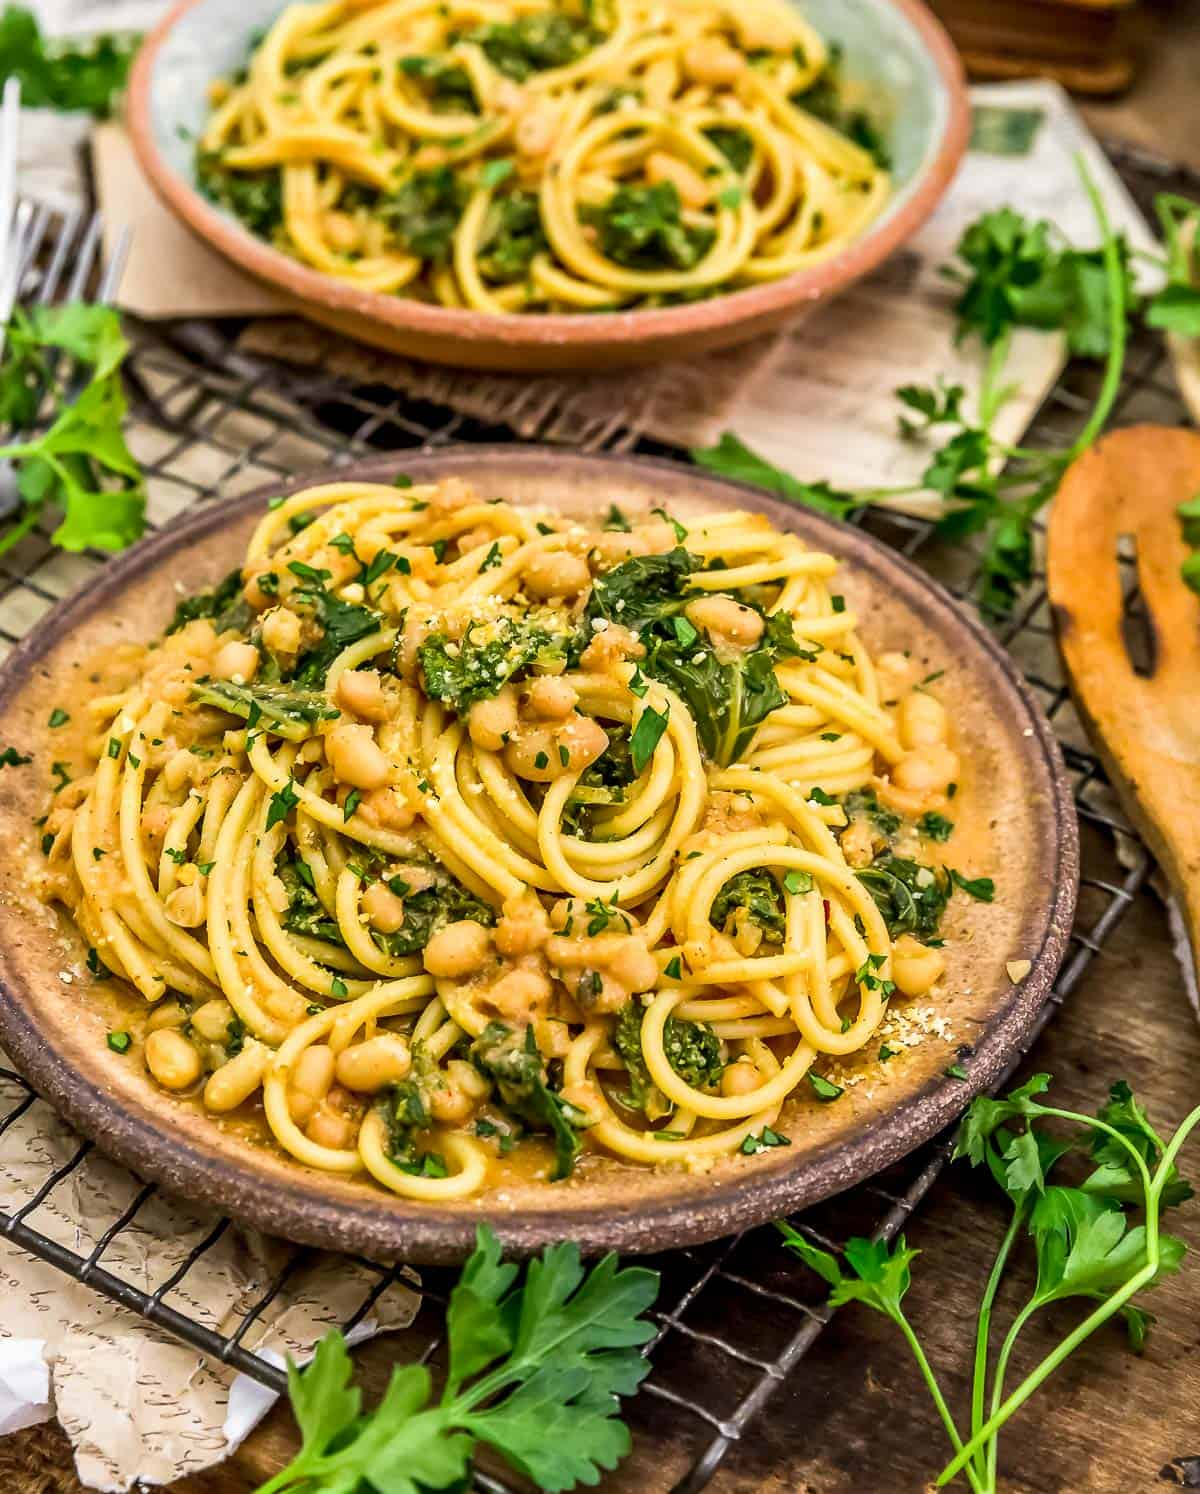 Served Smoky Kale and Bean Pasta